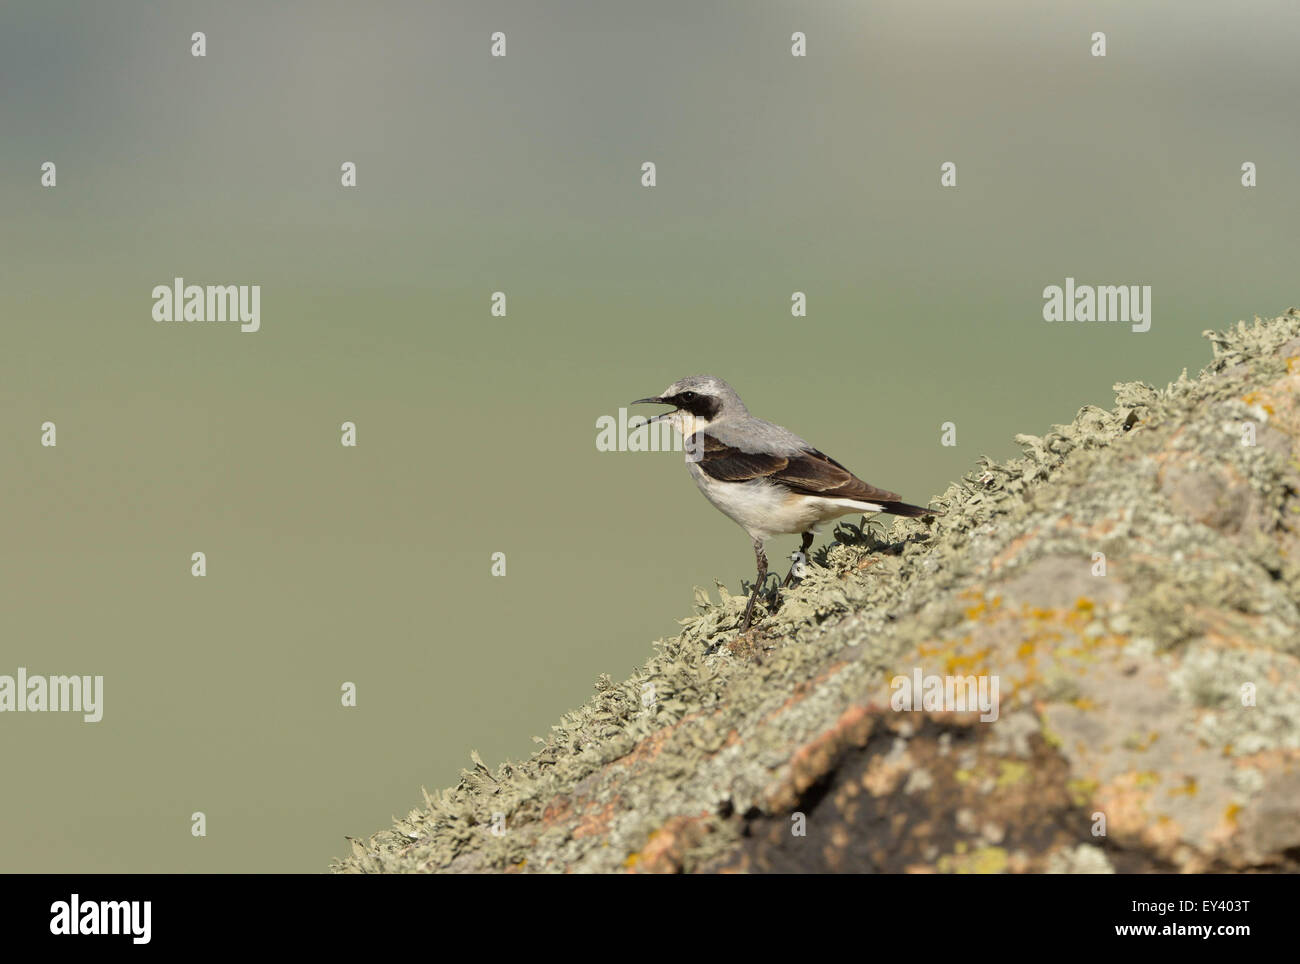 Northern Wheatear (Oenanthe oenanthe) adult male calling, perched on lichen covered rock, Romania, May - Stock Image